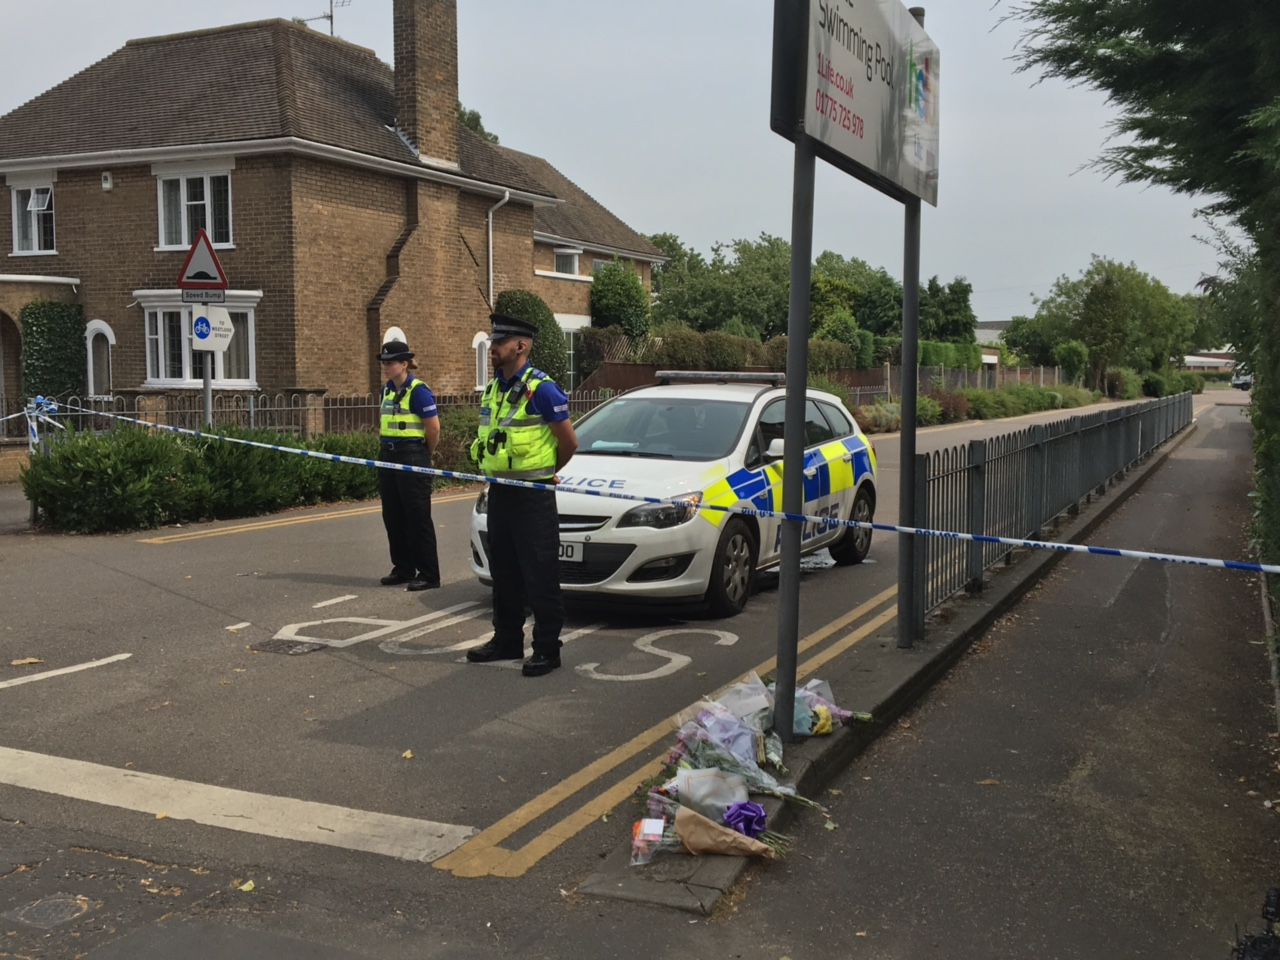 A police cordon remains in place on Wednesday, July 20.